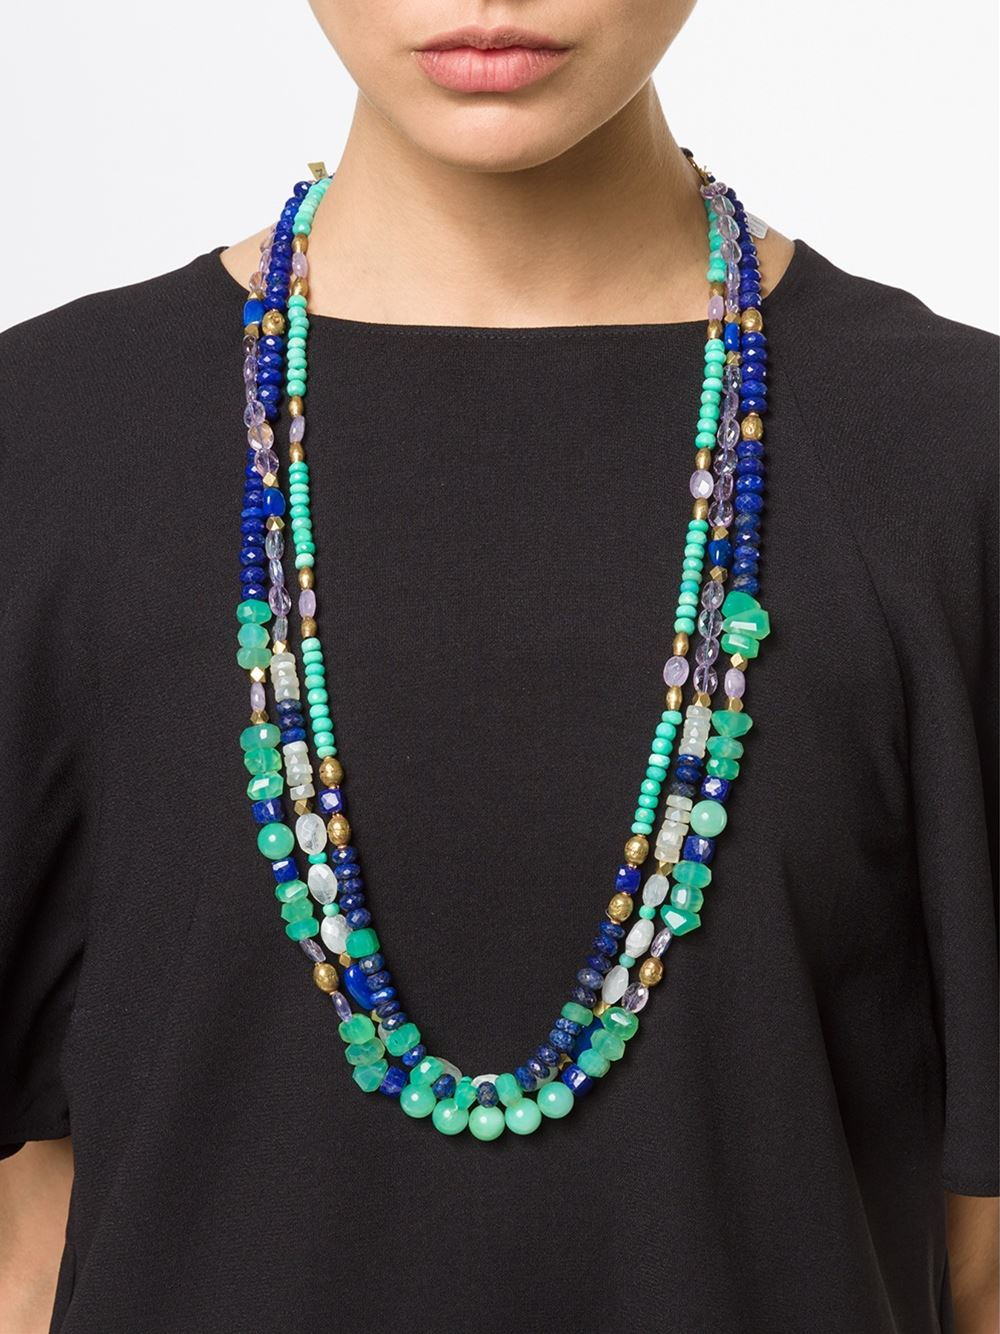 Royal Nomad Jewelry Mixed Stone Beaded Necklace In Green